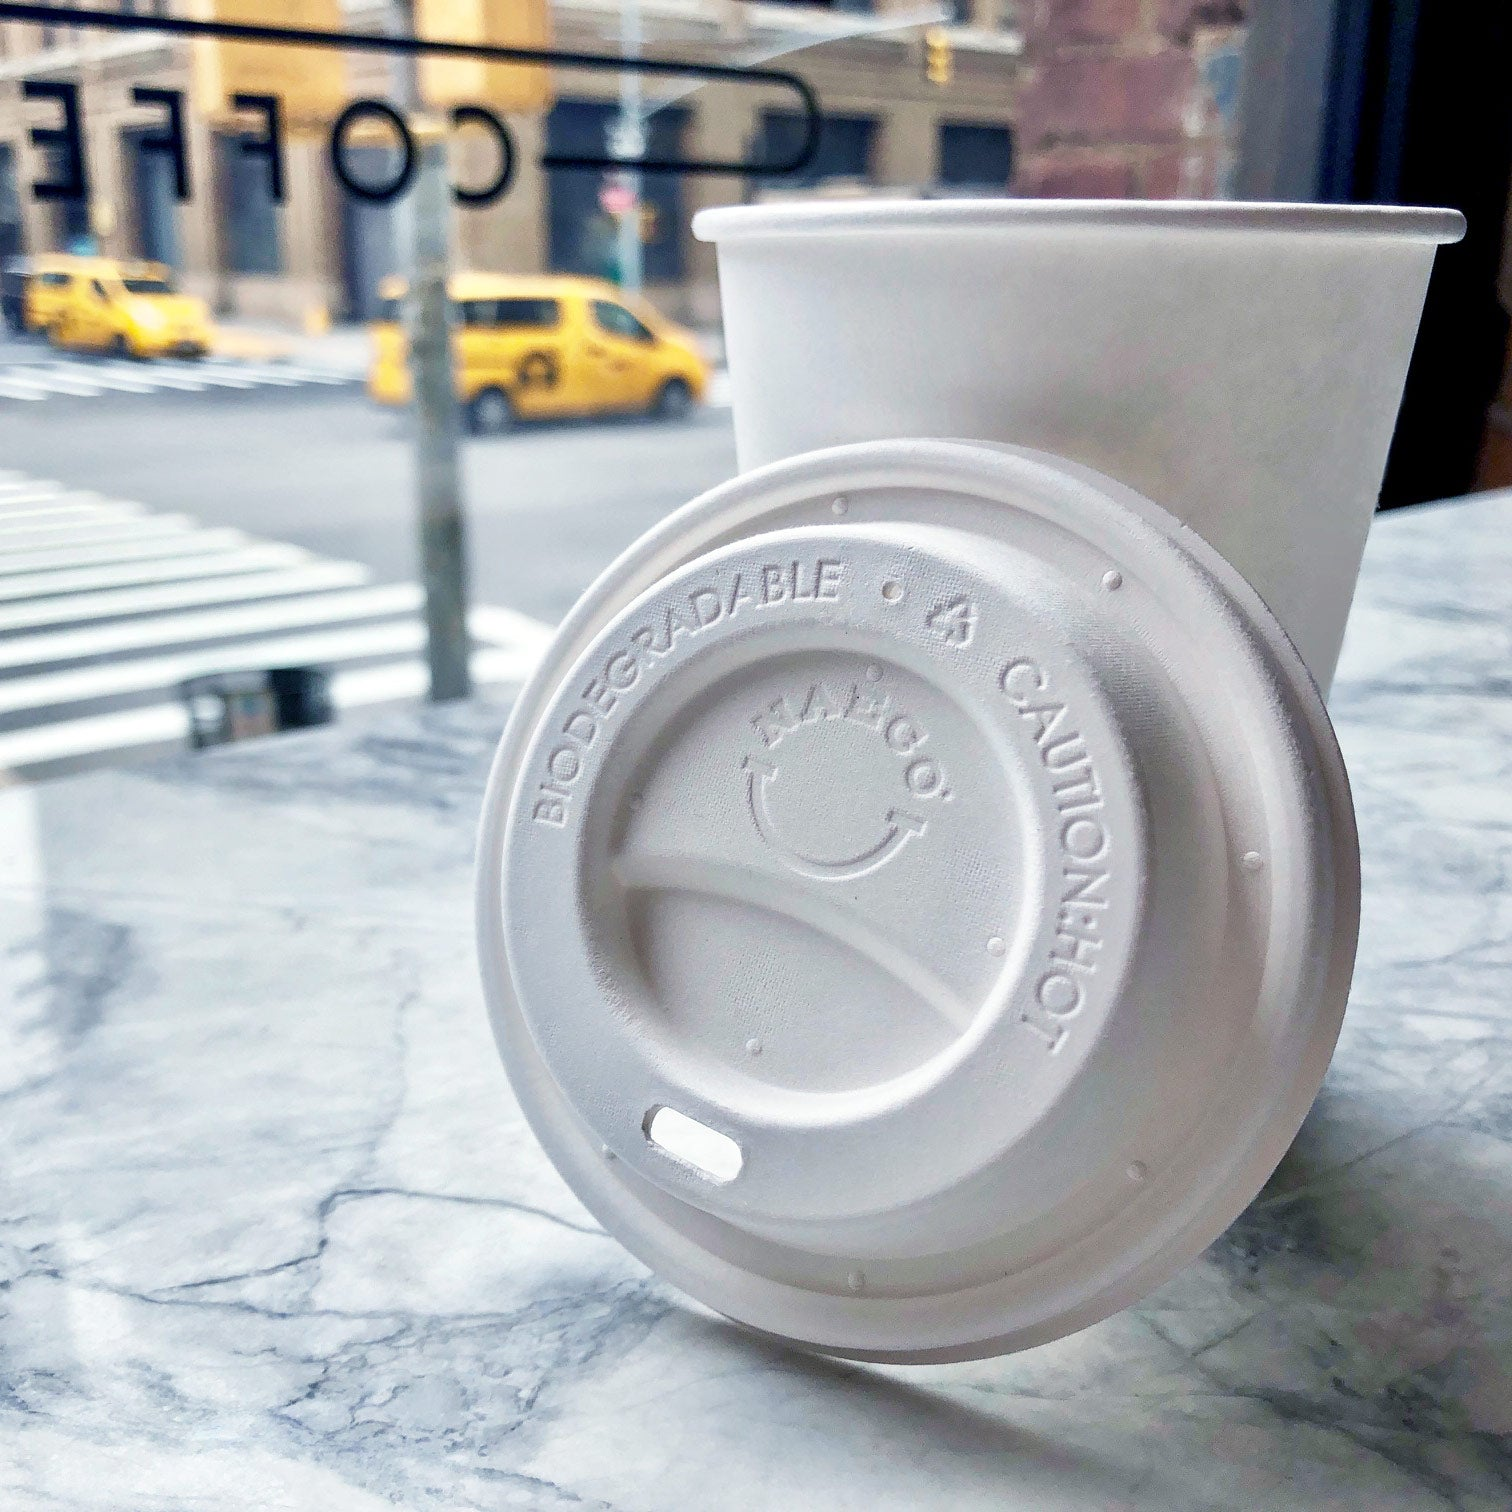 Biodegradable Coffee Lids